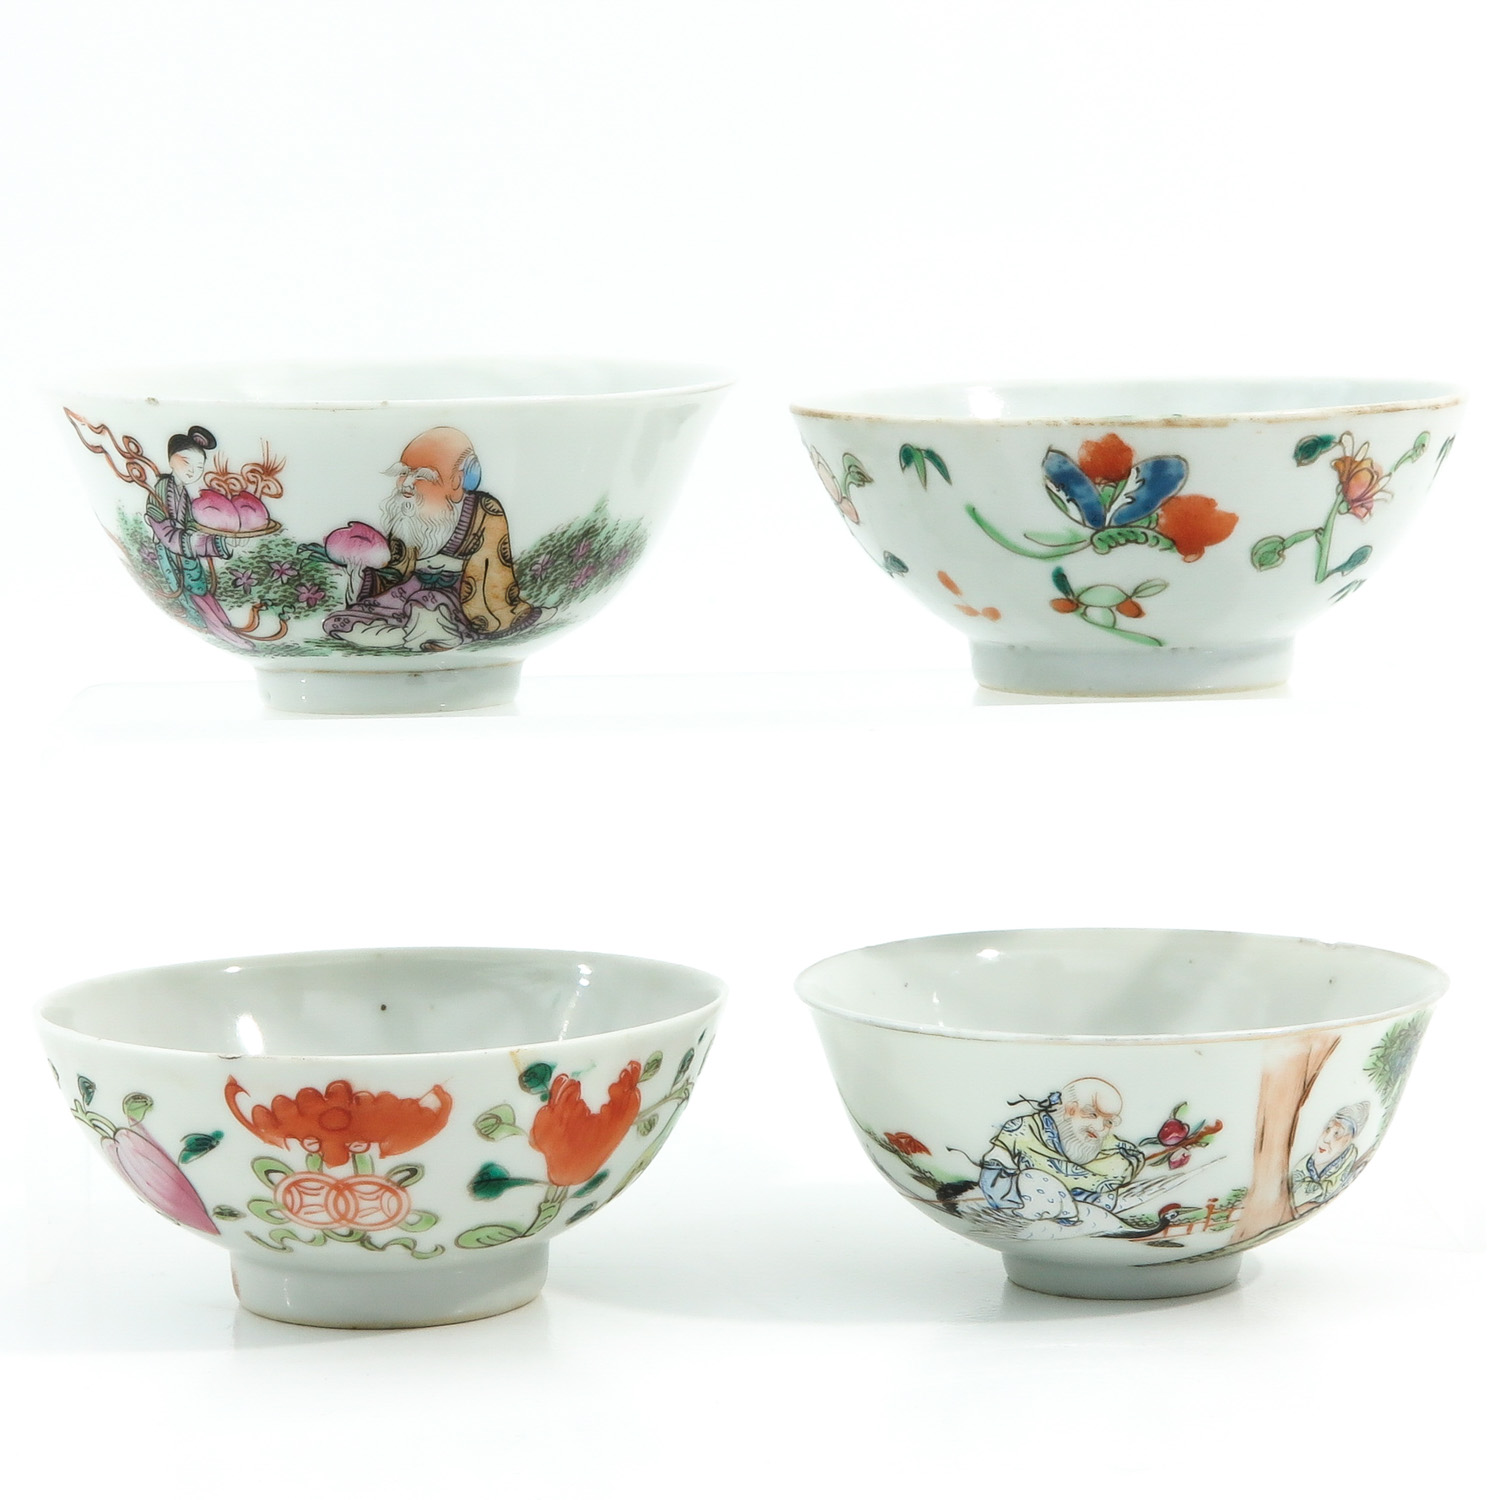 A Collection of 4 Polychrome Bowls